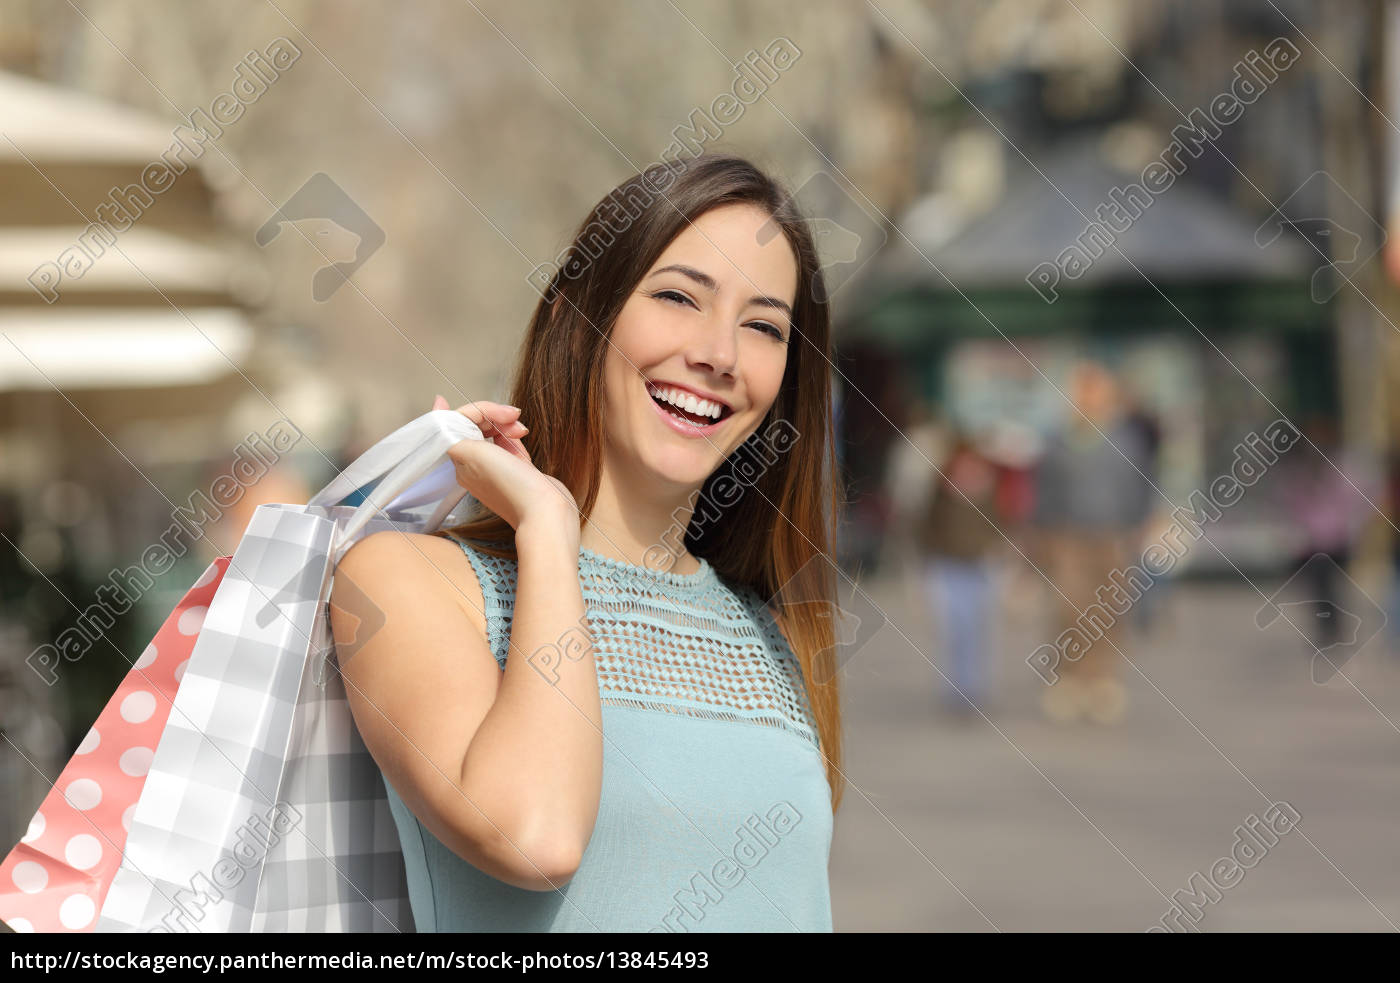 shopper, woman, buying, and, holding, shopping - 13845493